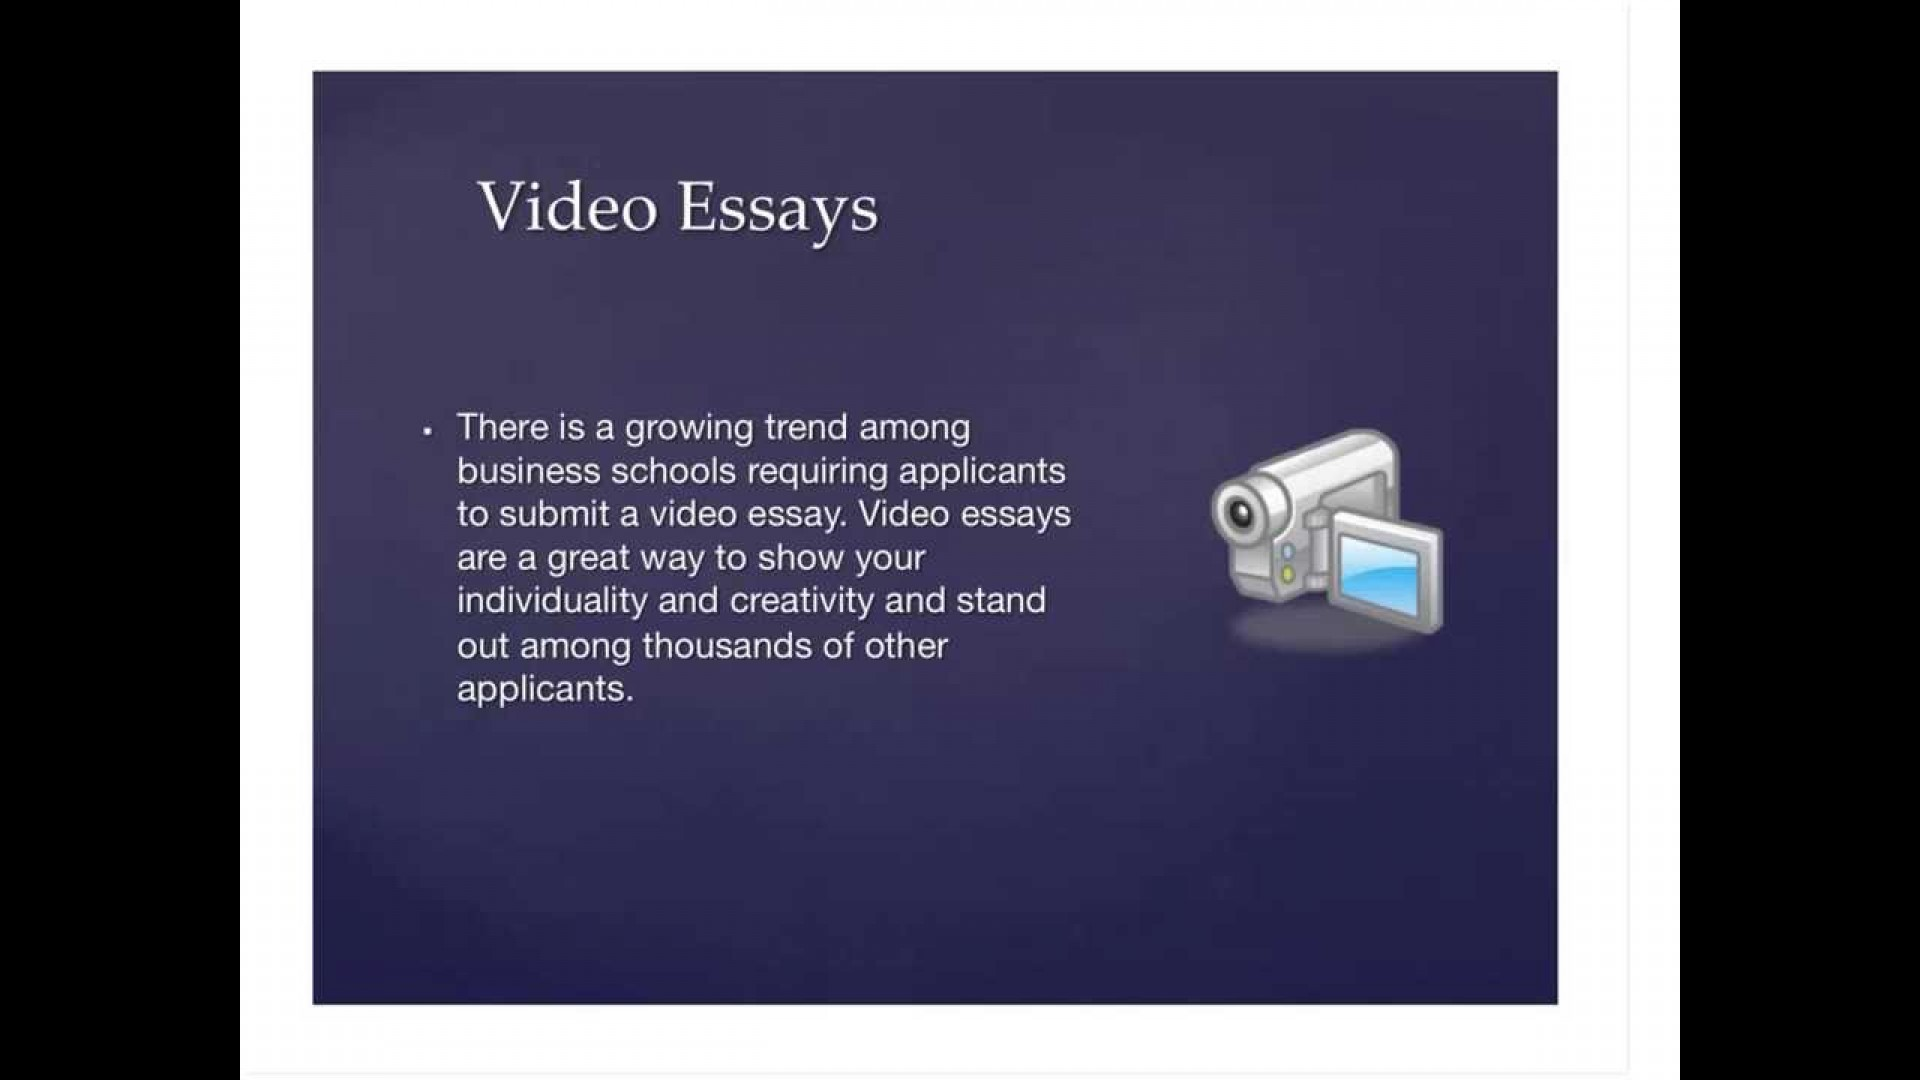 001 Video Essay Example Marvelous Definition Ideas College Examples 1920